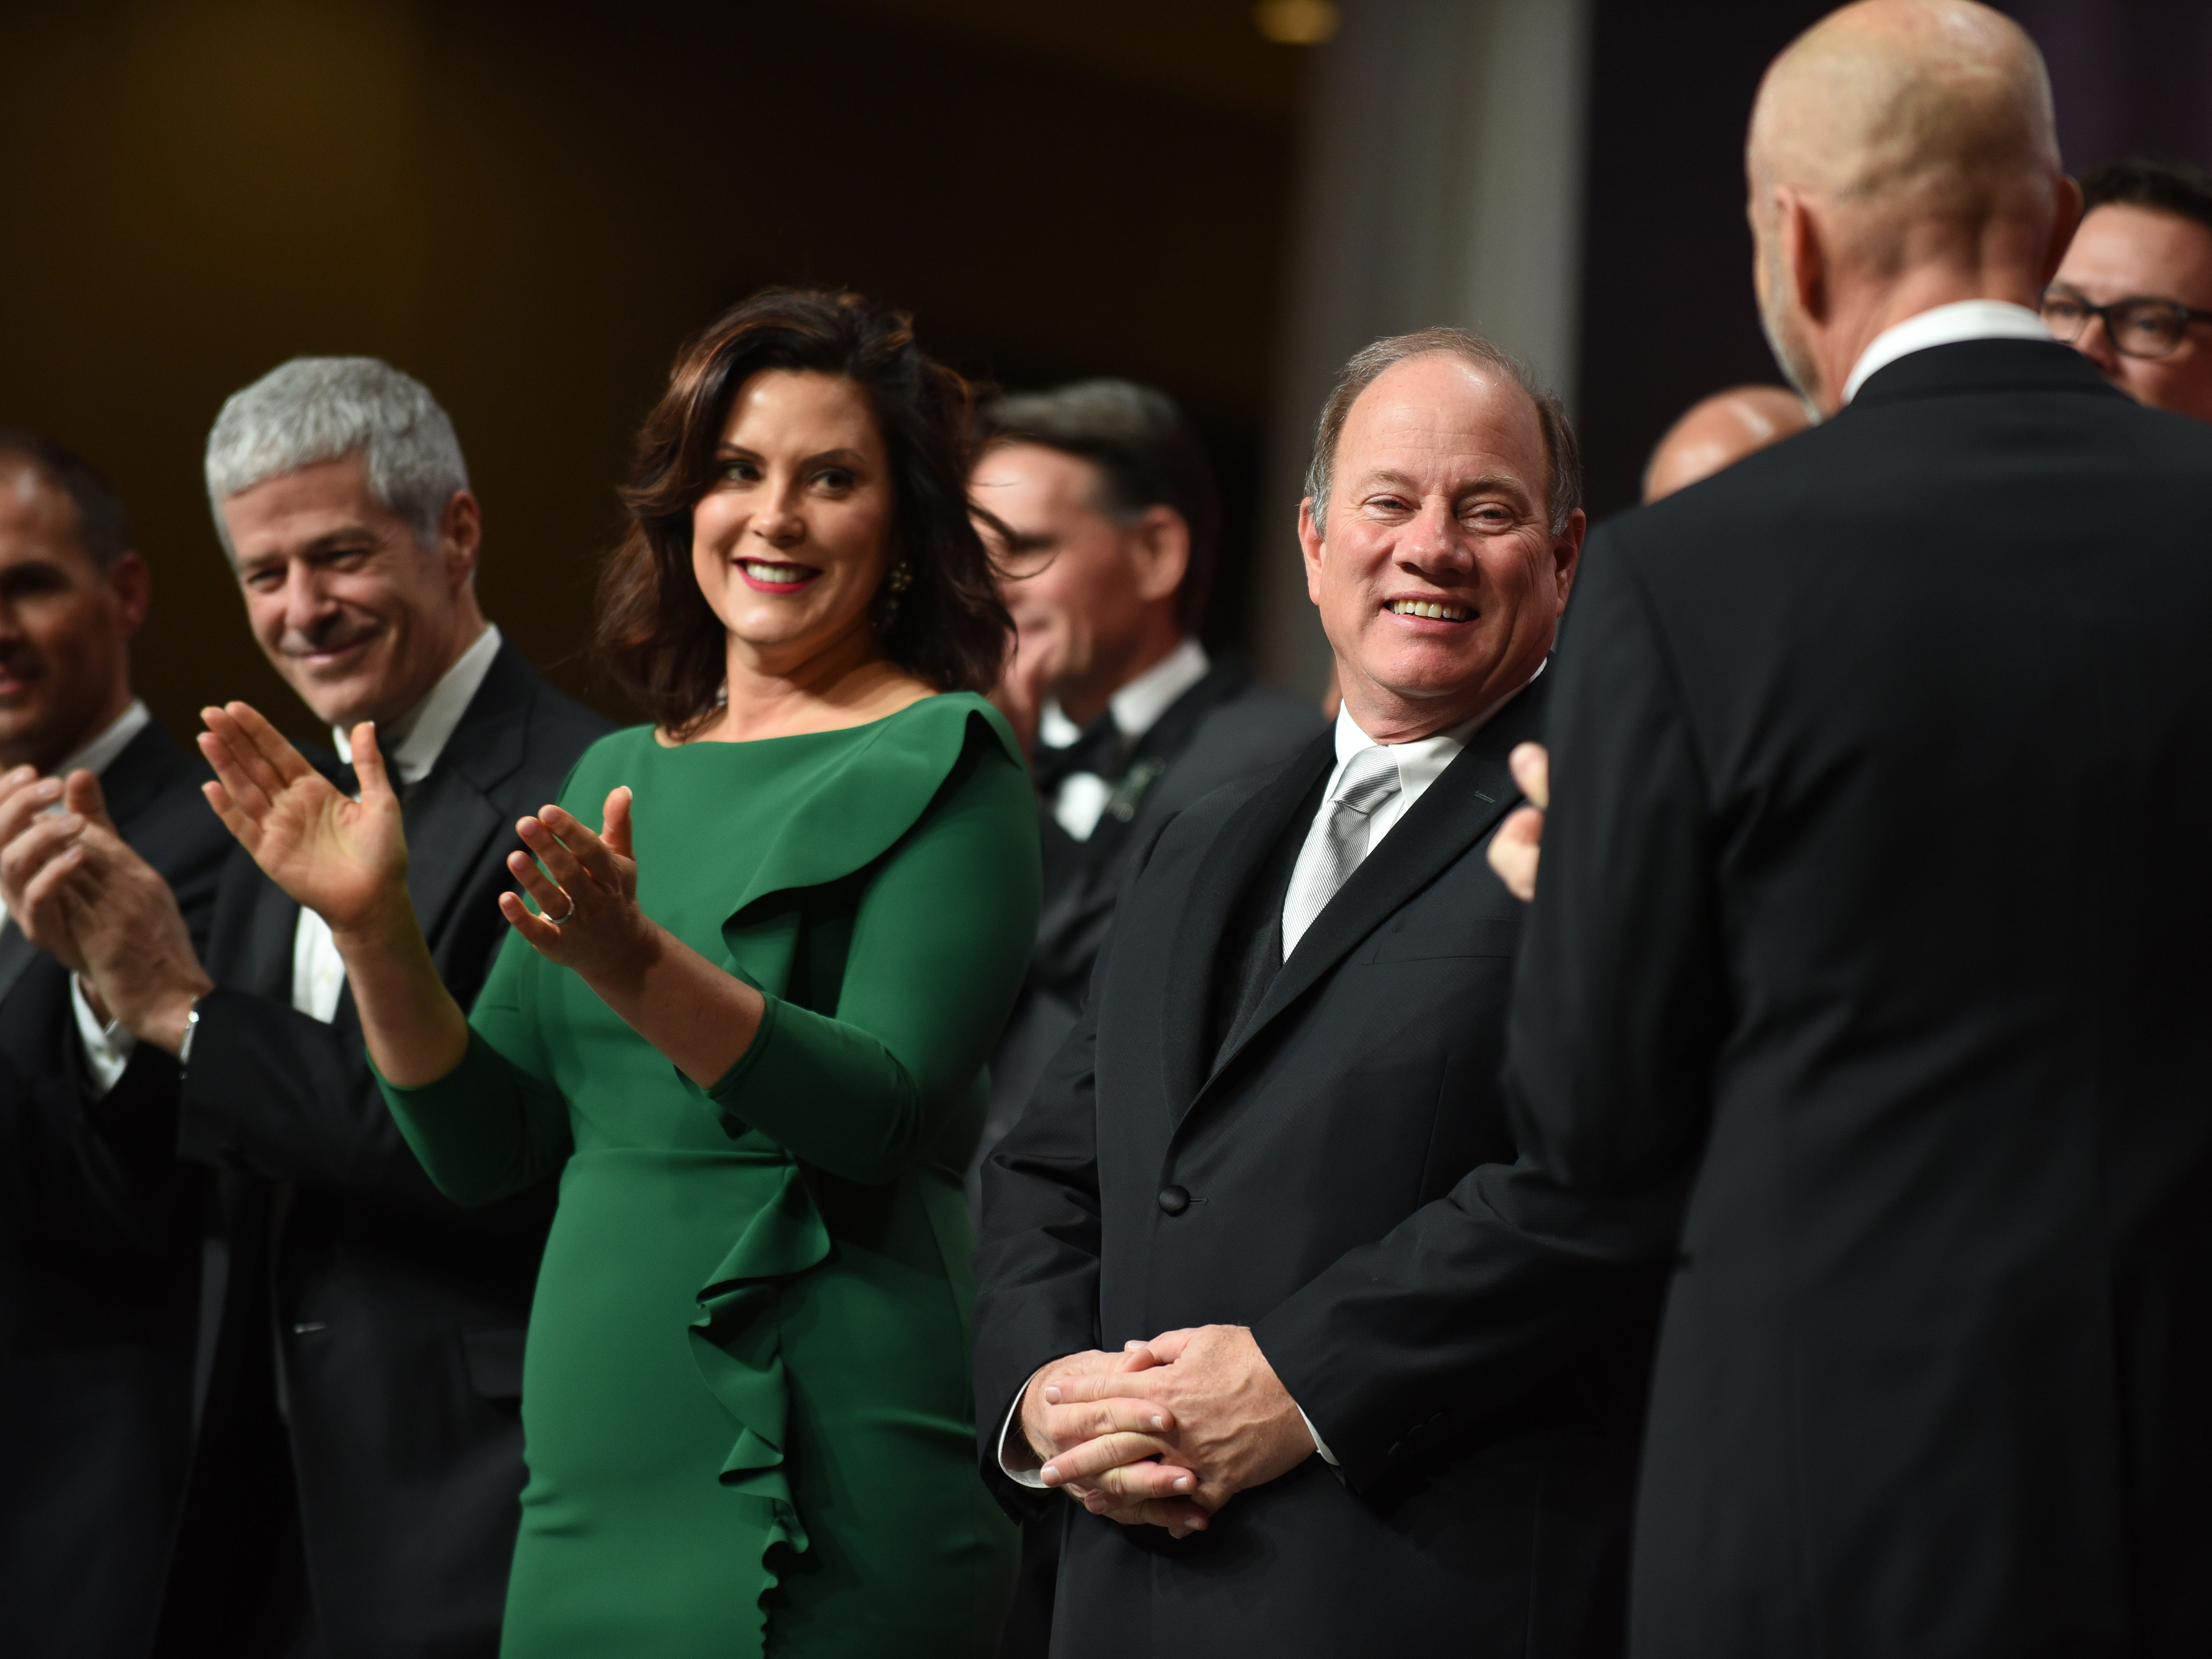 Michigan Gov. Gretchen Whitmer and Detroit Mayor Mike Duggan smile during the ribbon-cutting.